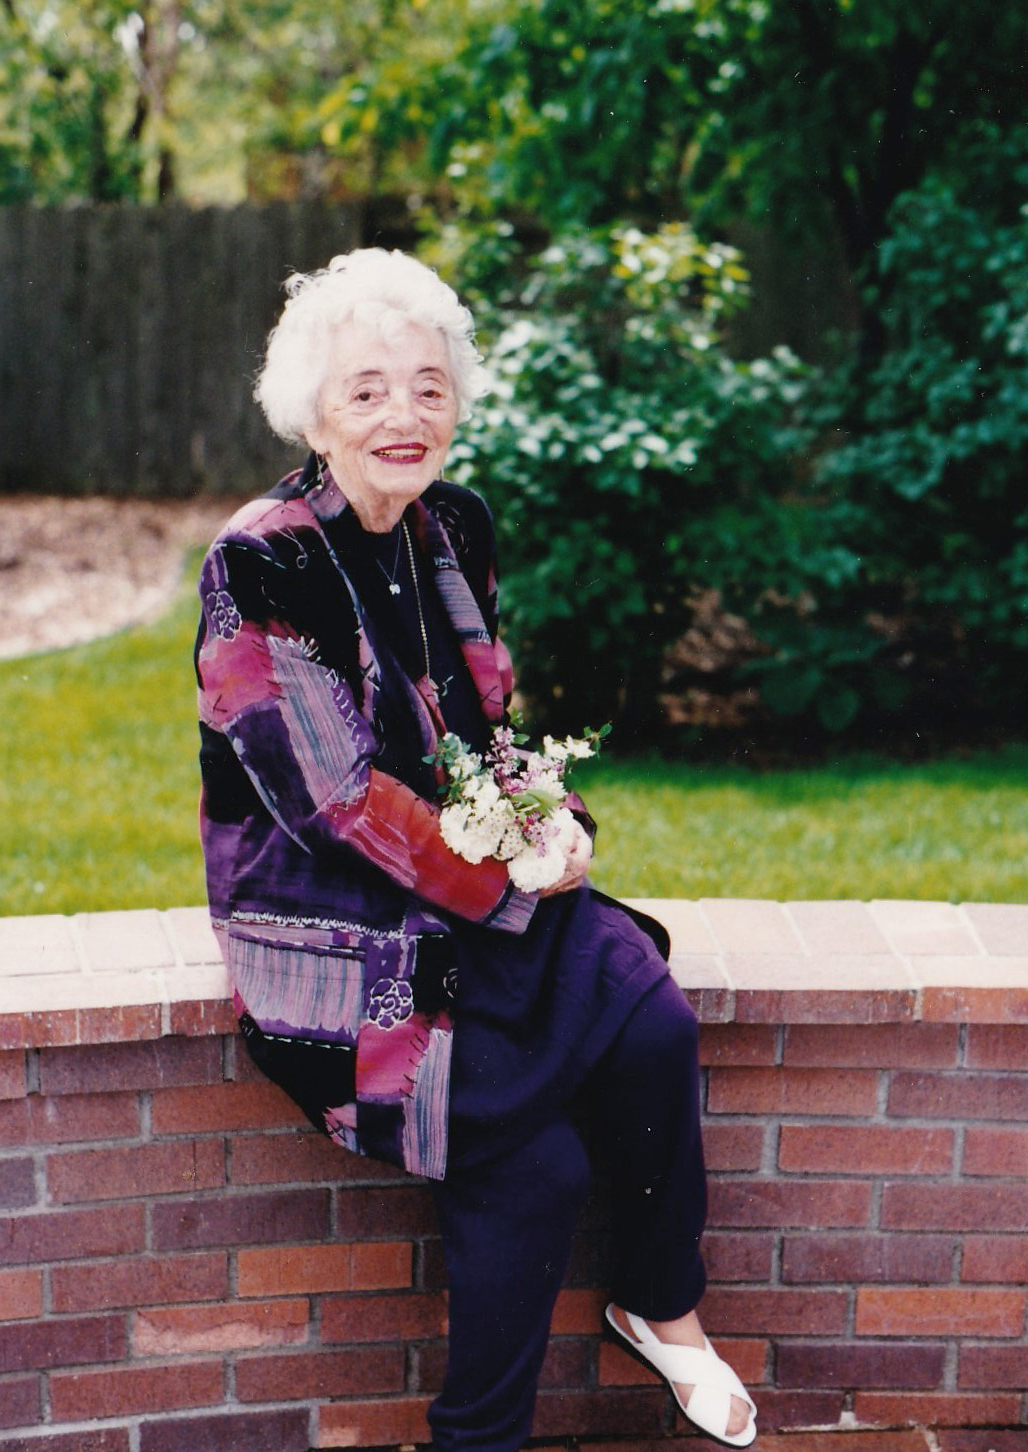 My Mom in 1995, celebrating her 90th birthday - the same year the world commemorated the end of WW2.